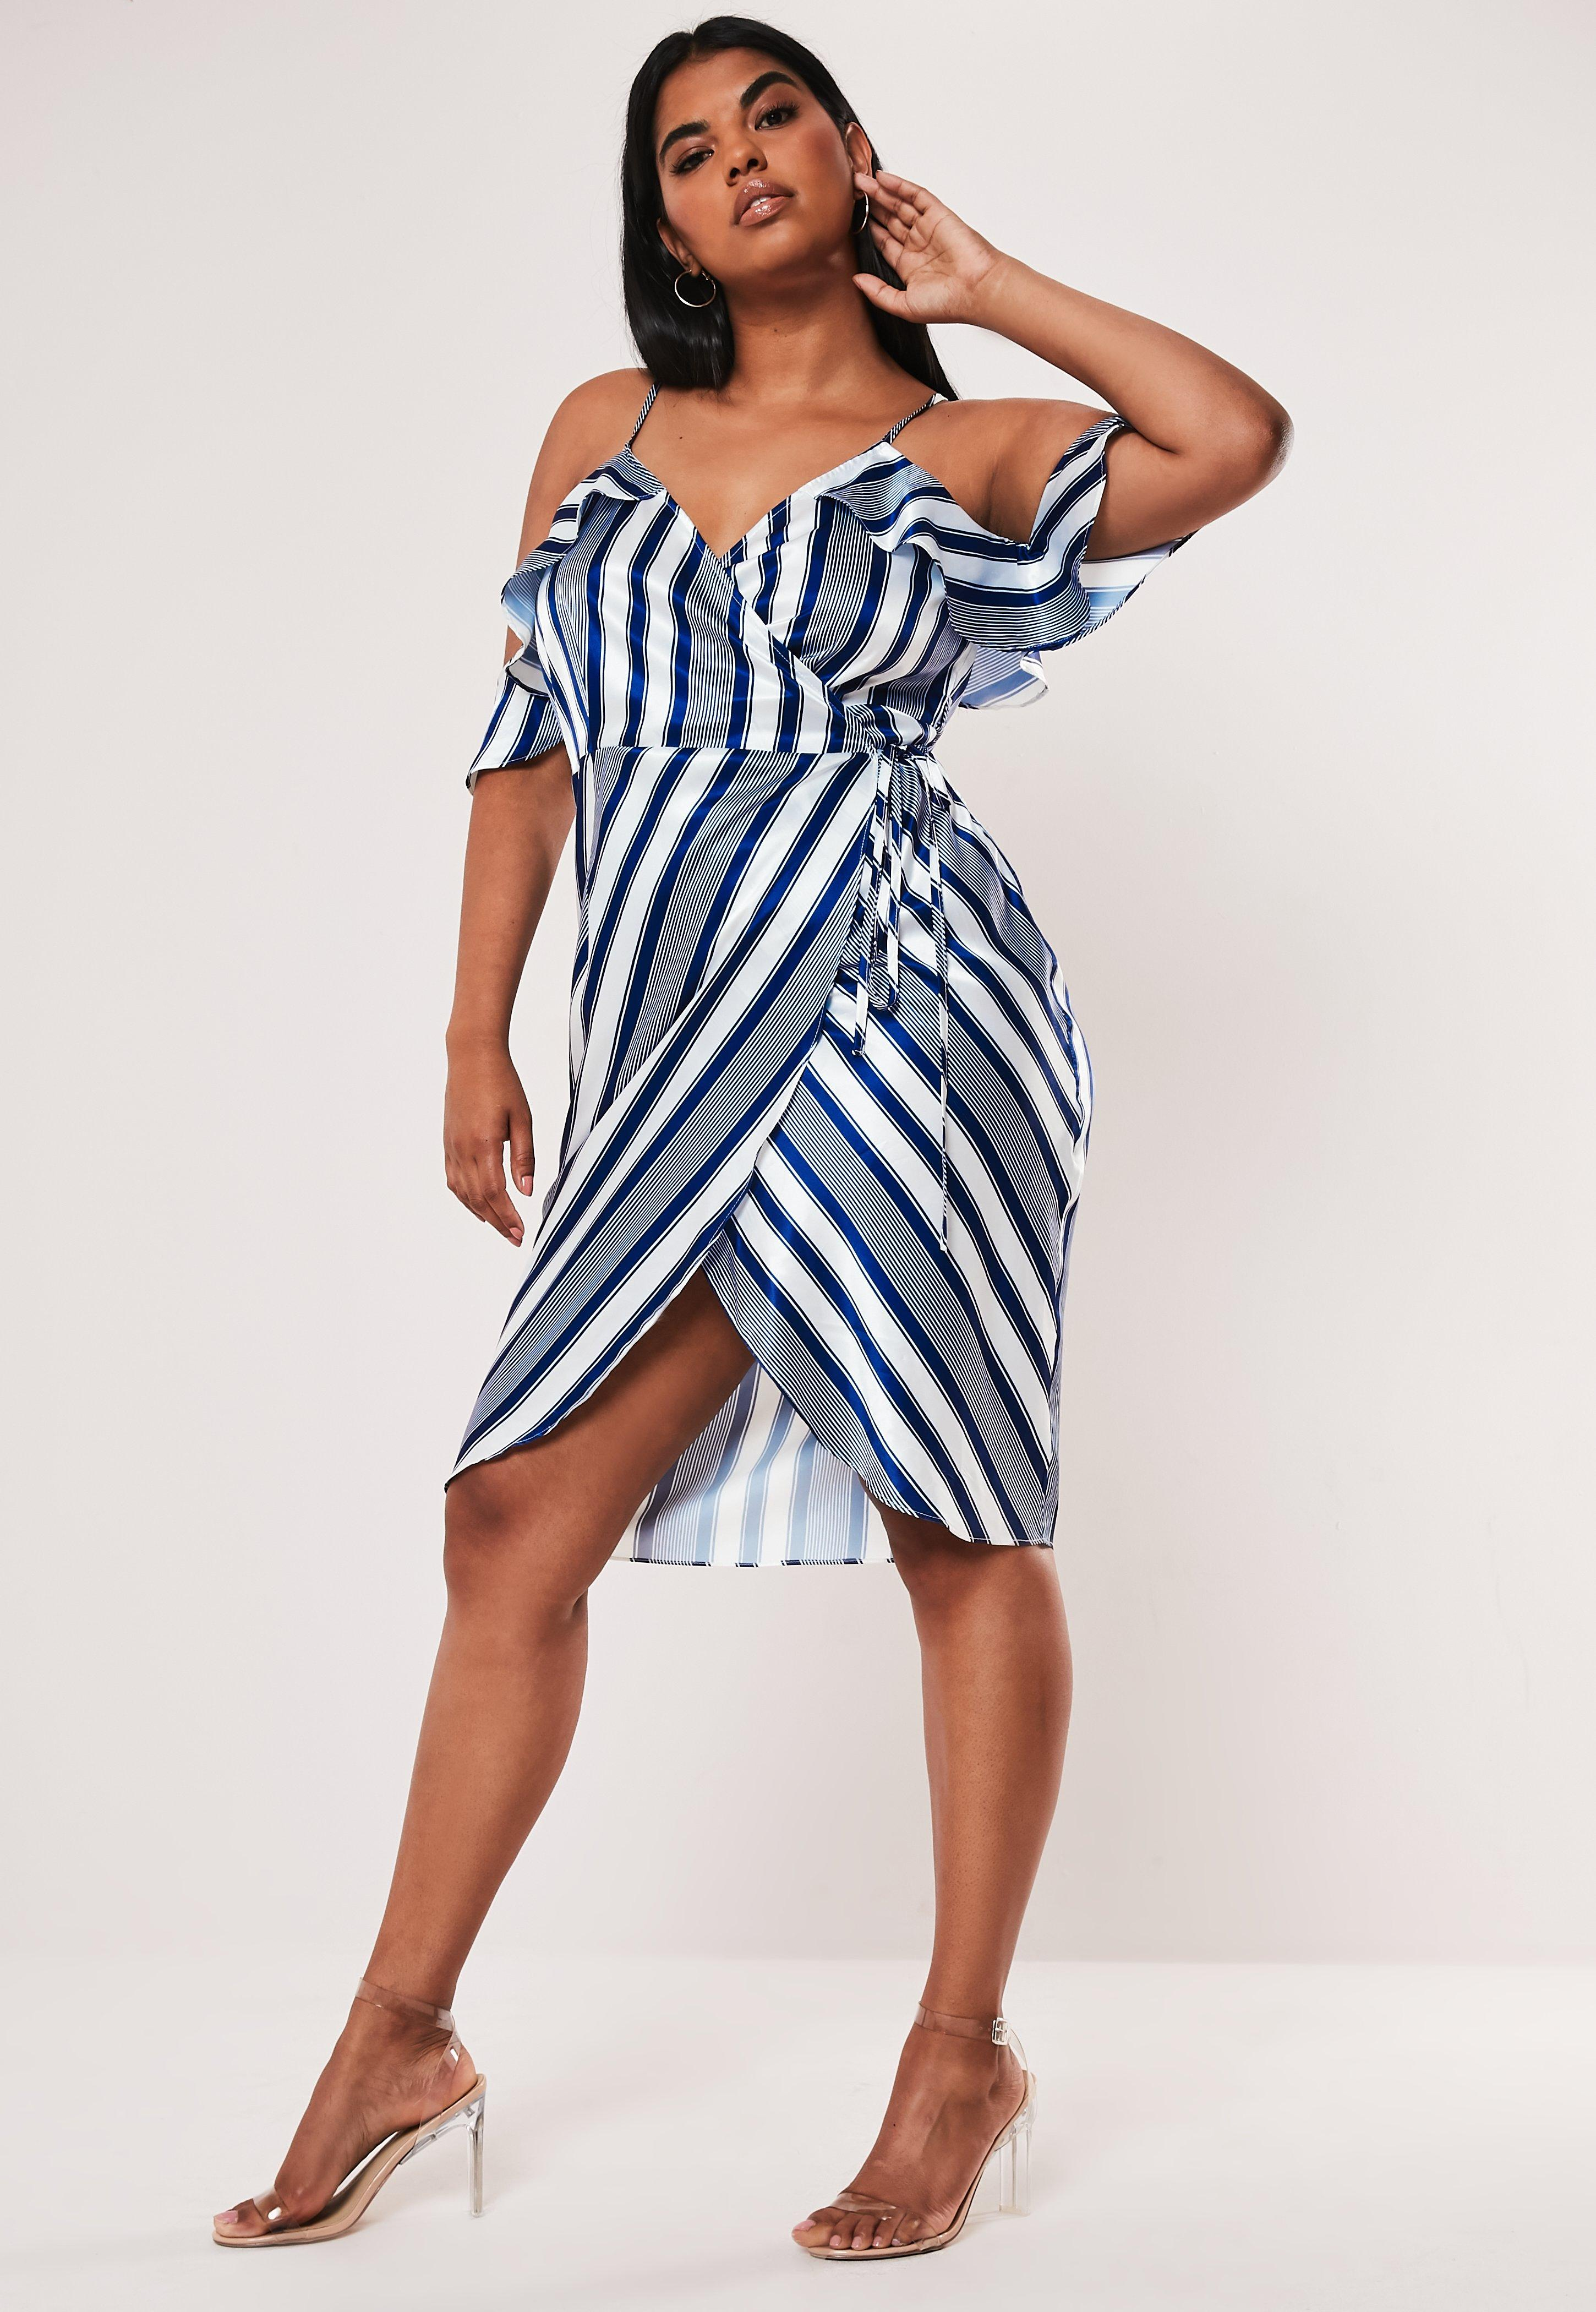 a0254a54572e26 Plus Size Clothing & Plus Size Women's Fashion | Missguided+